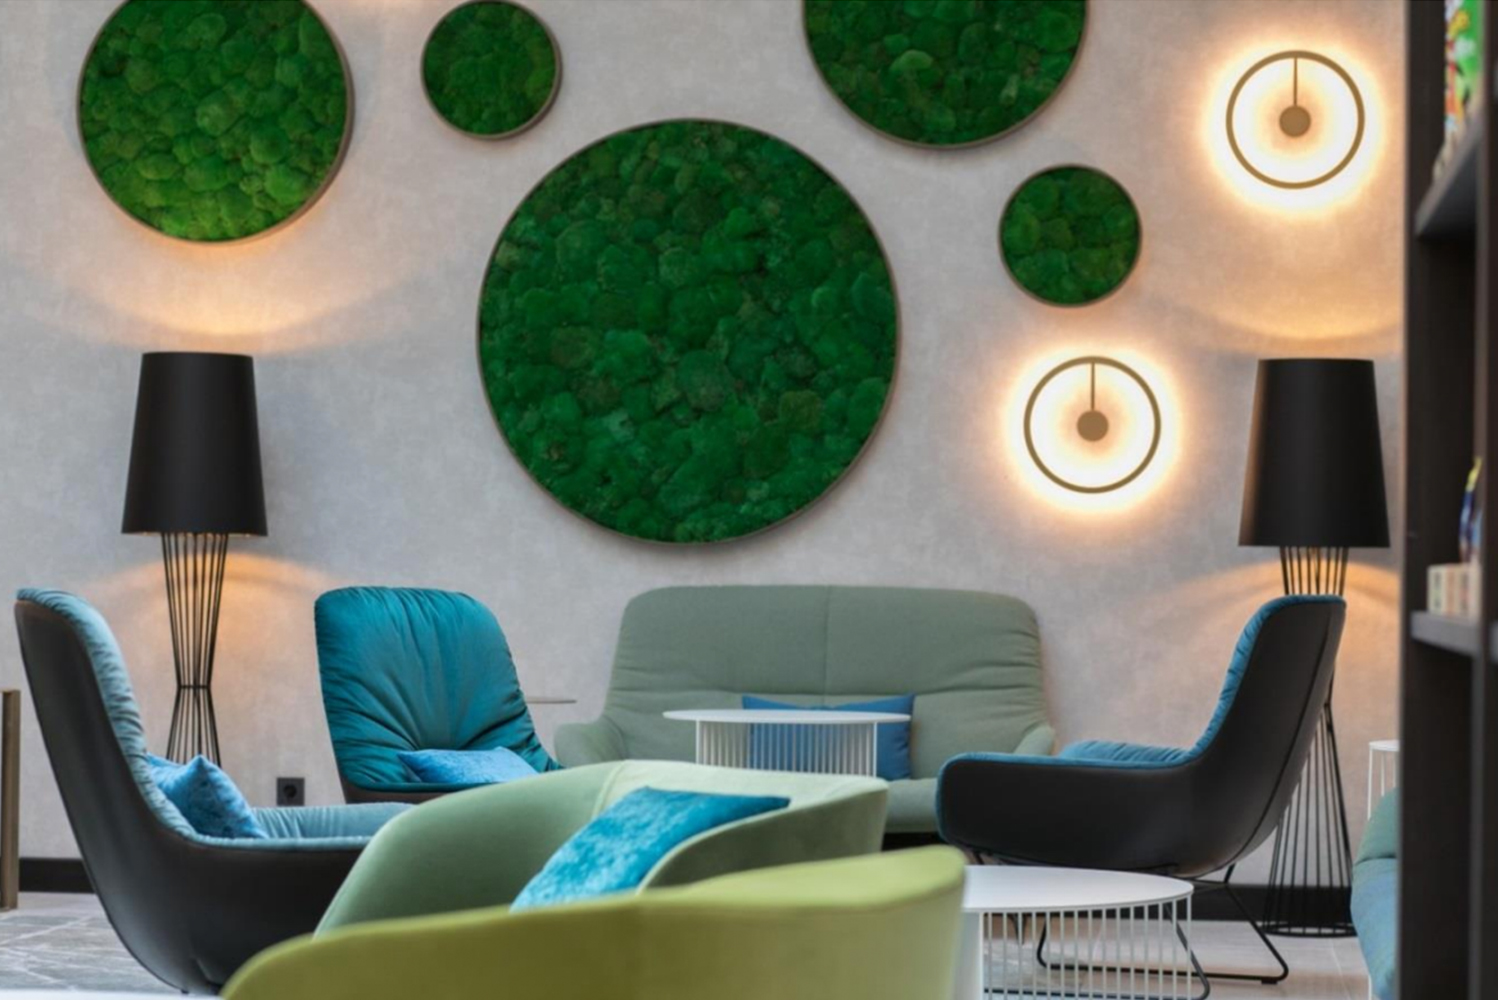 JOI-Design created the interiors for the Hyatt Place Frankfurt, the brand's first property in Germany.